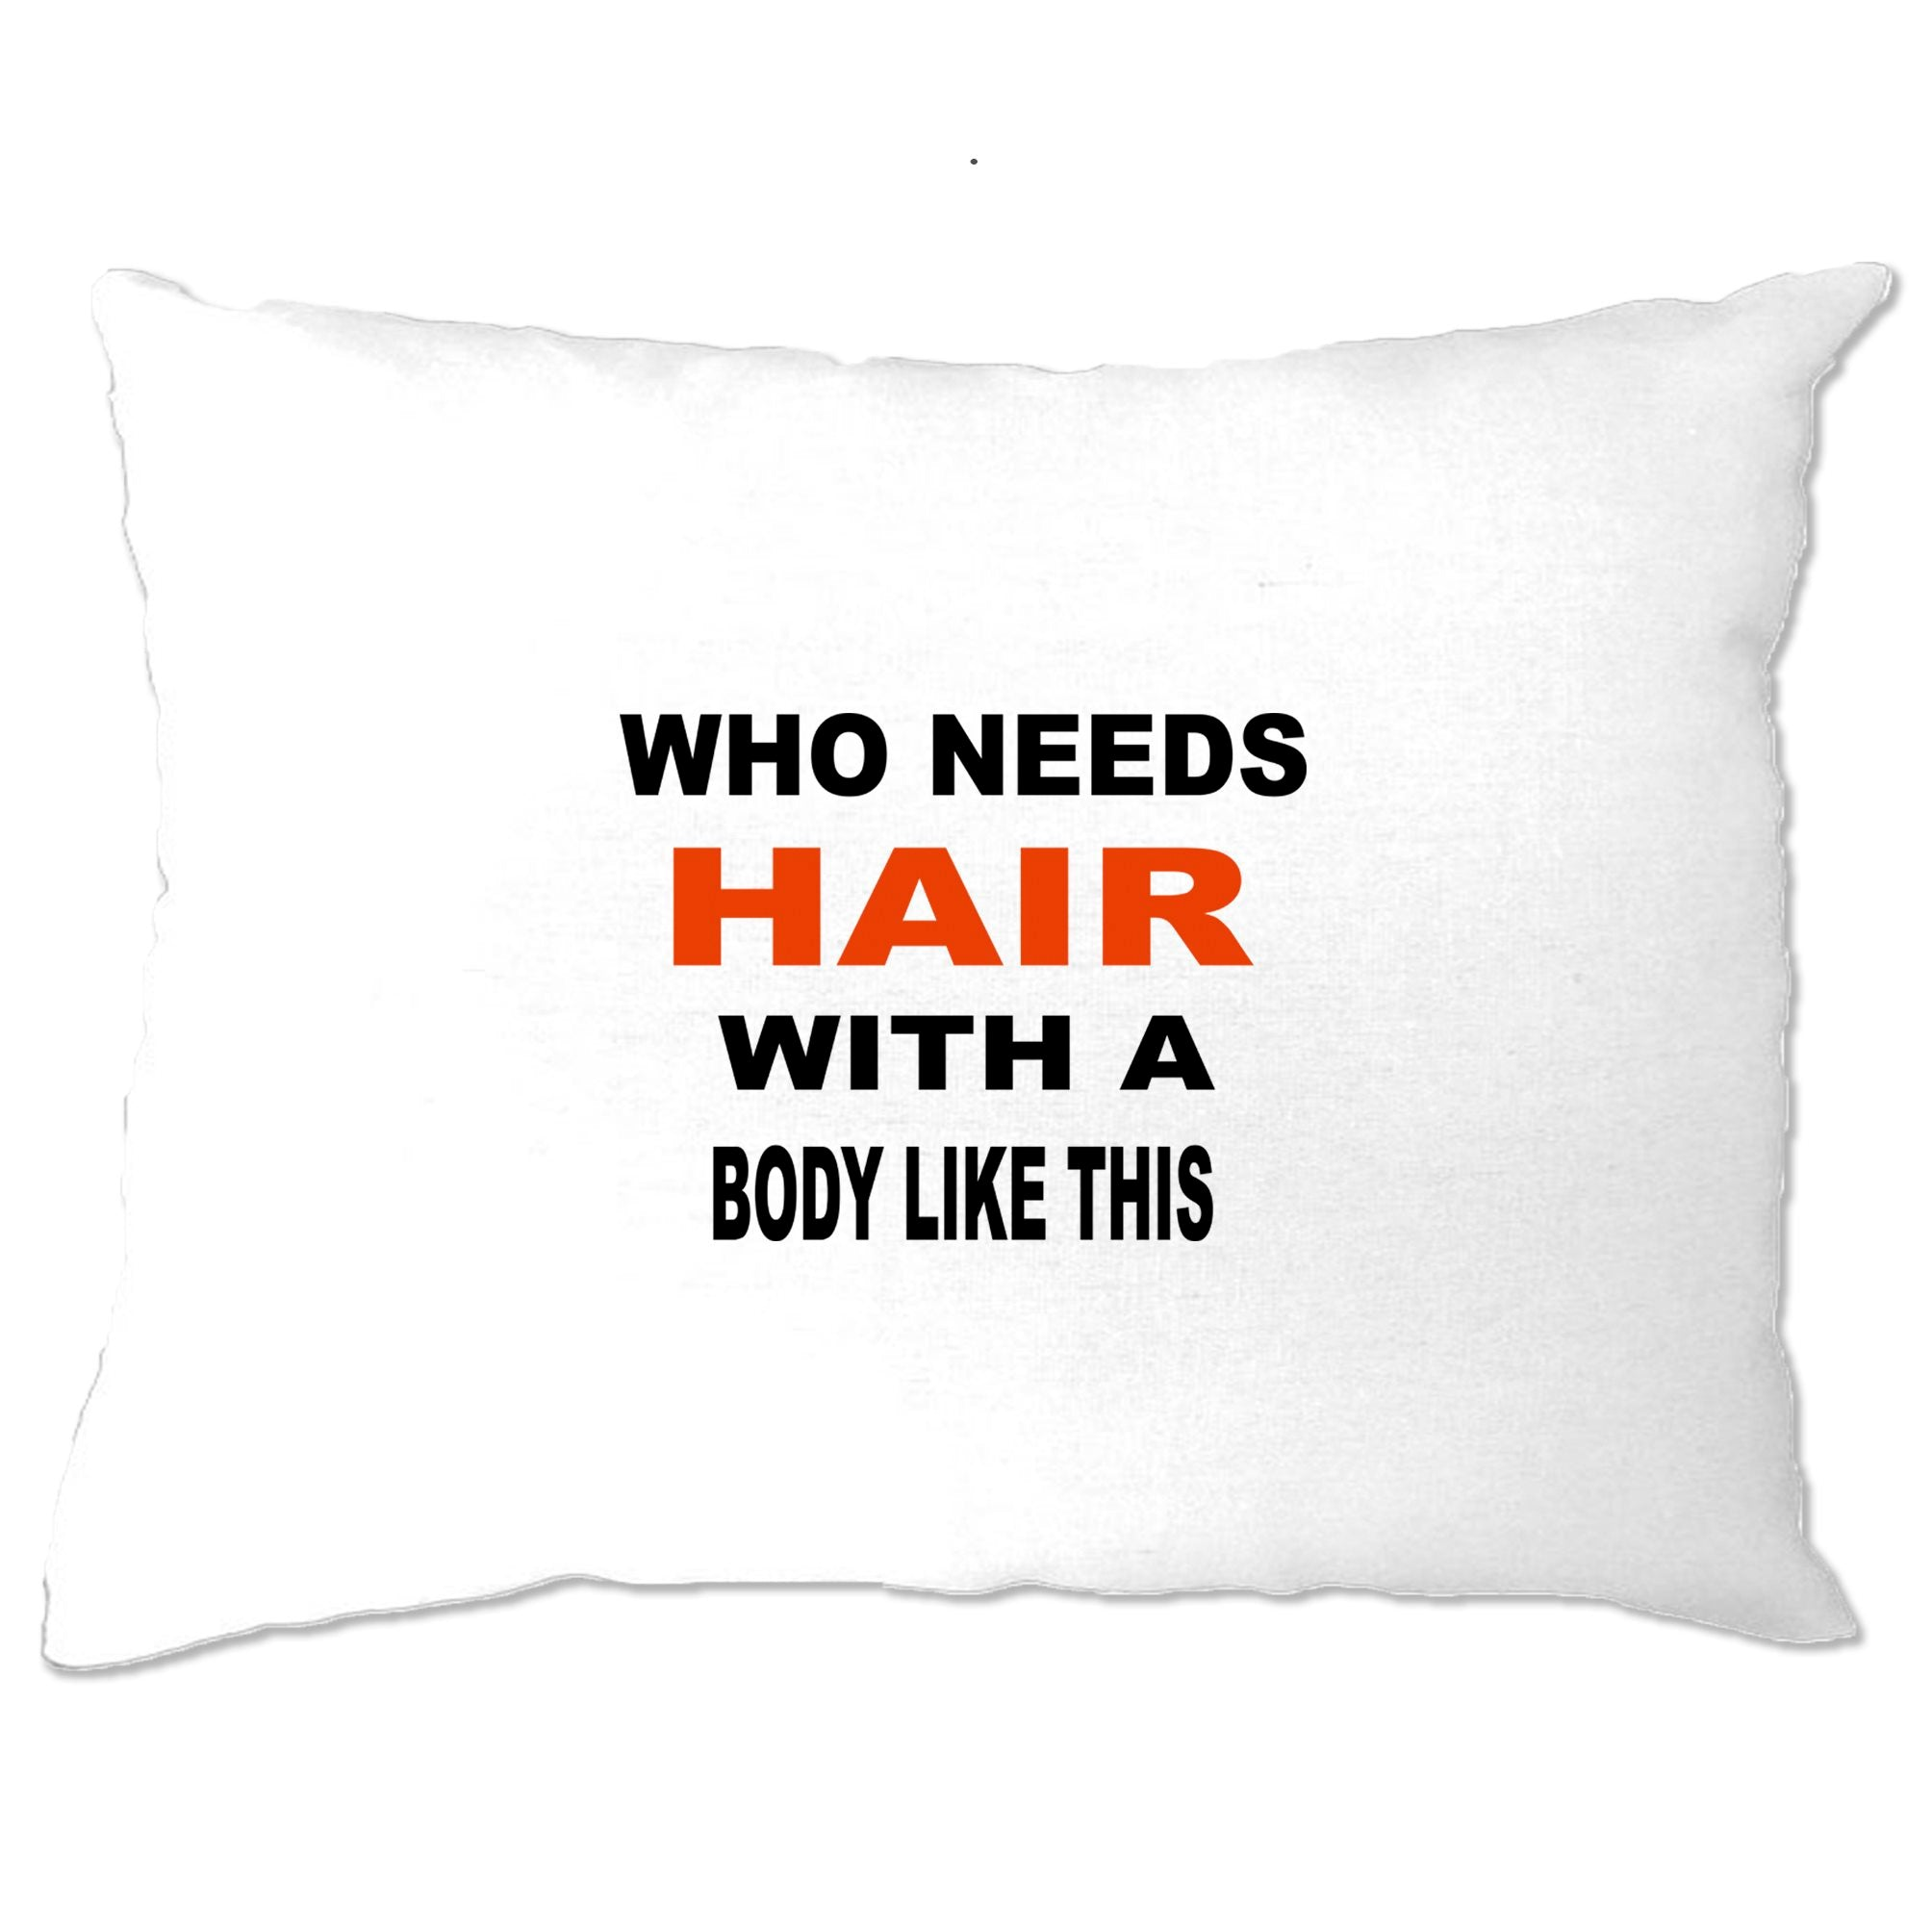 Novelty Pillow Case Who Needs Hair With A Body Like This